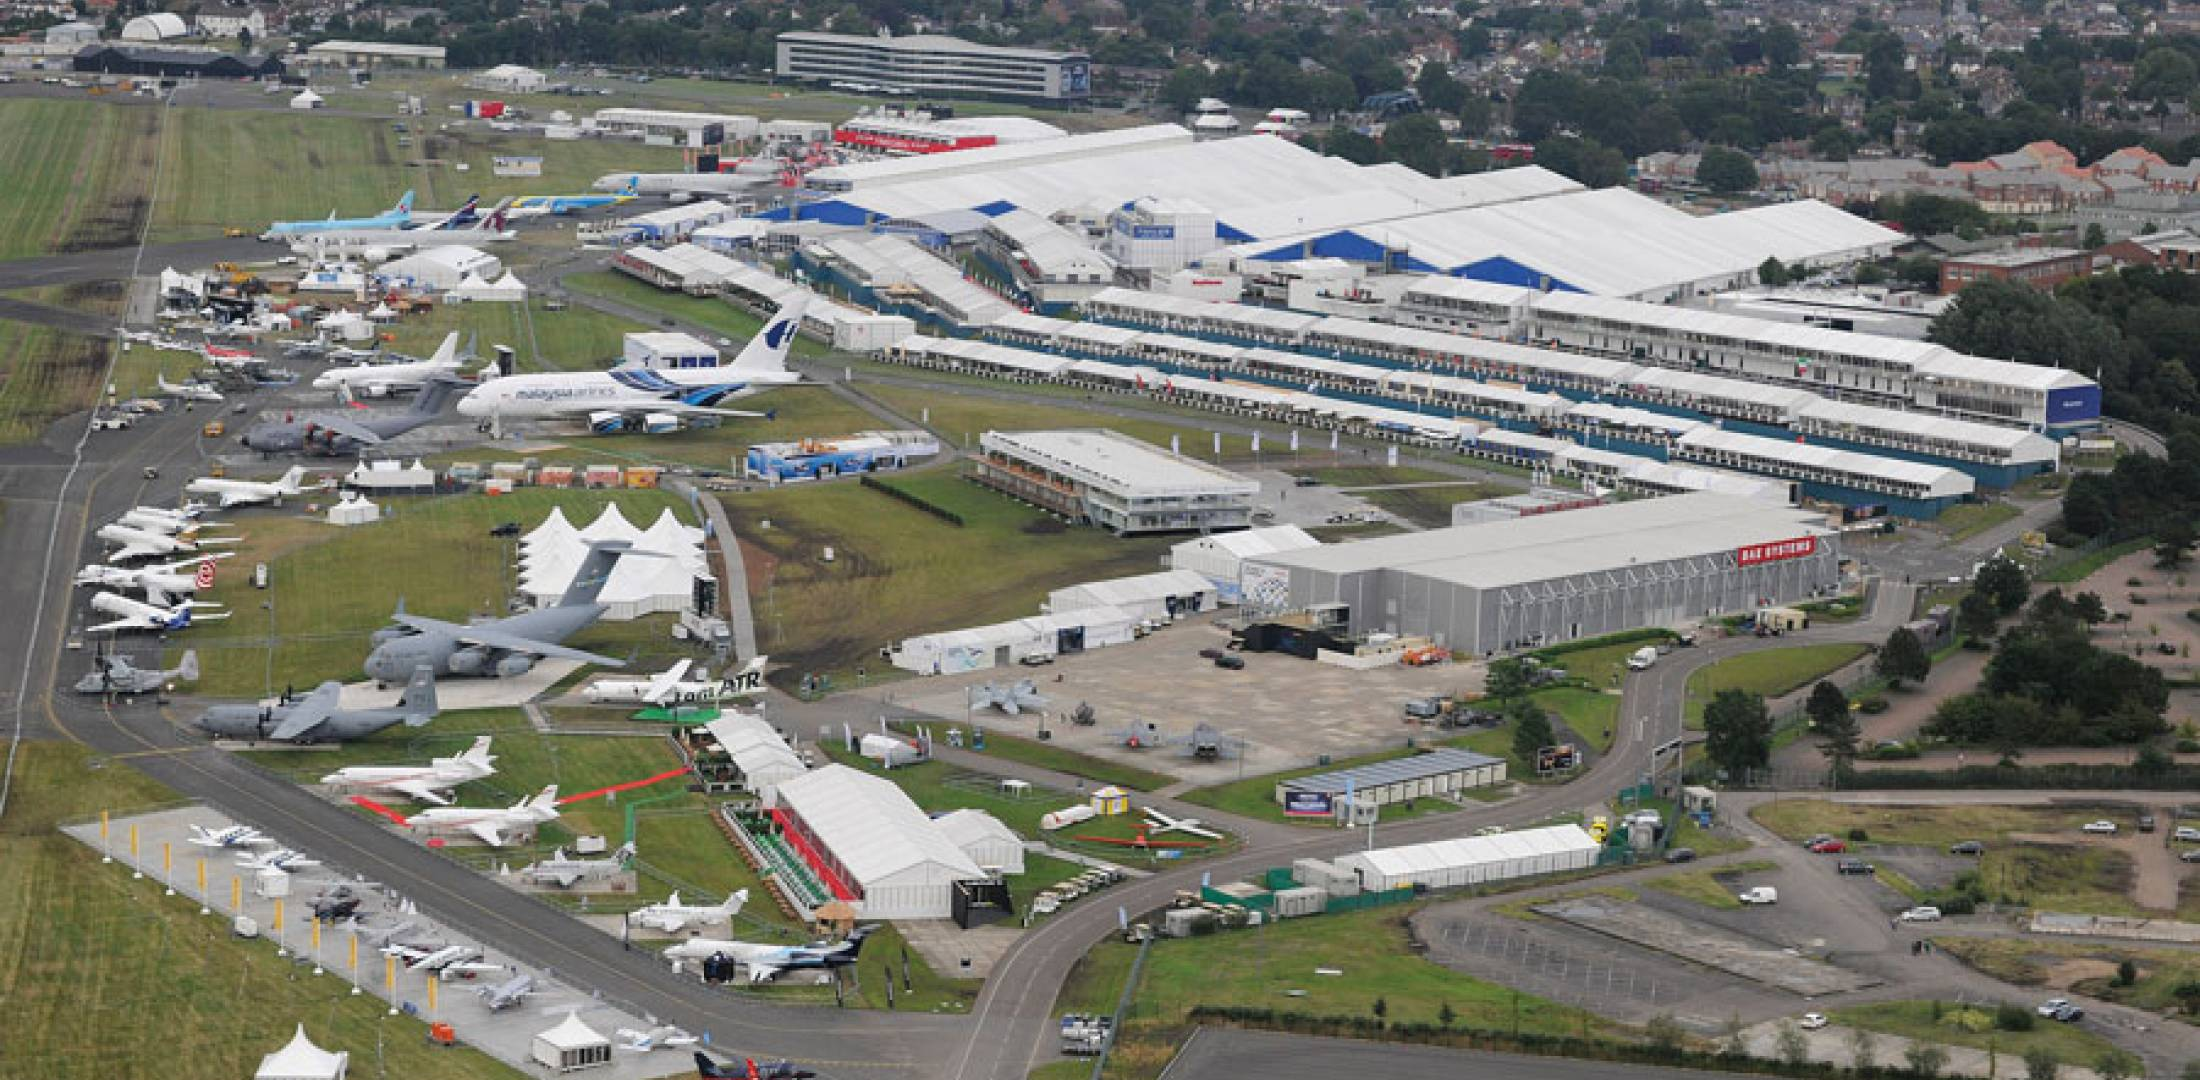 Farnborough show site